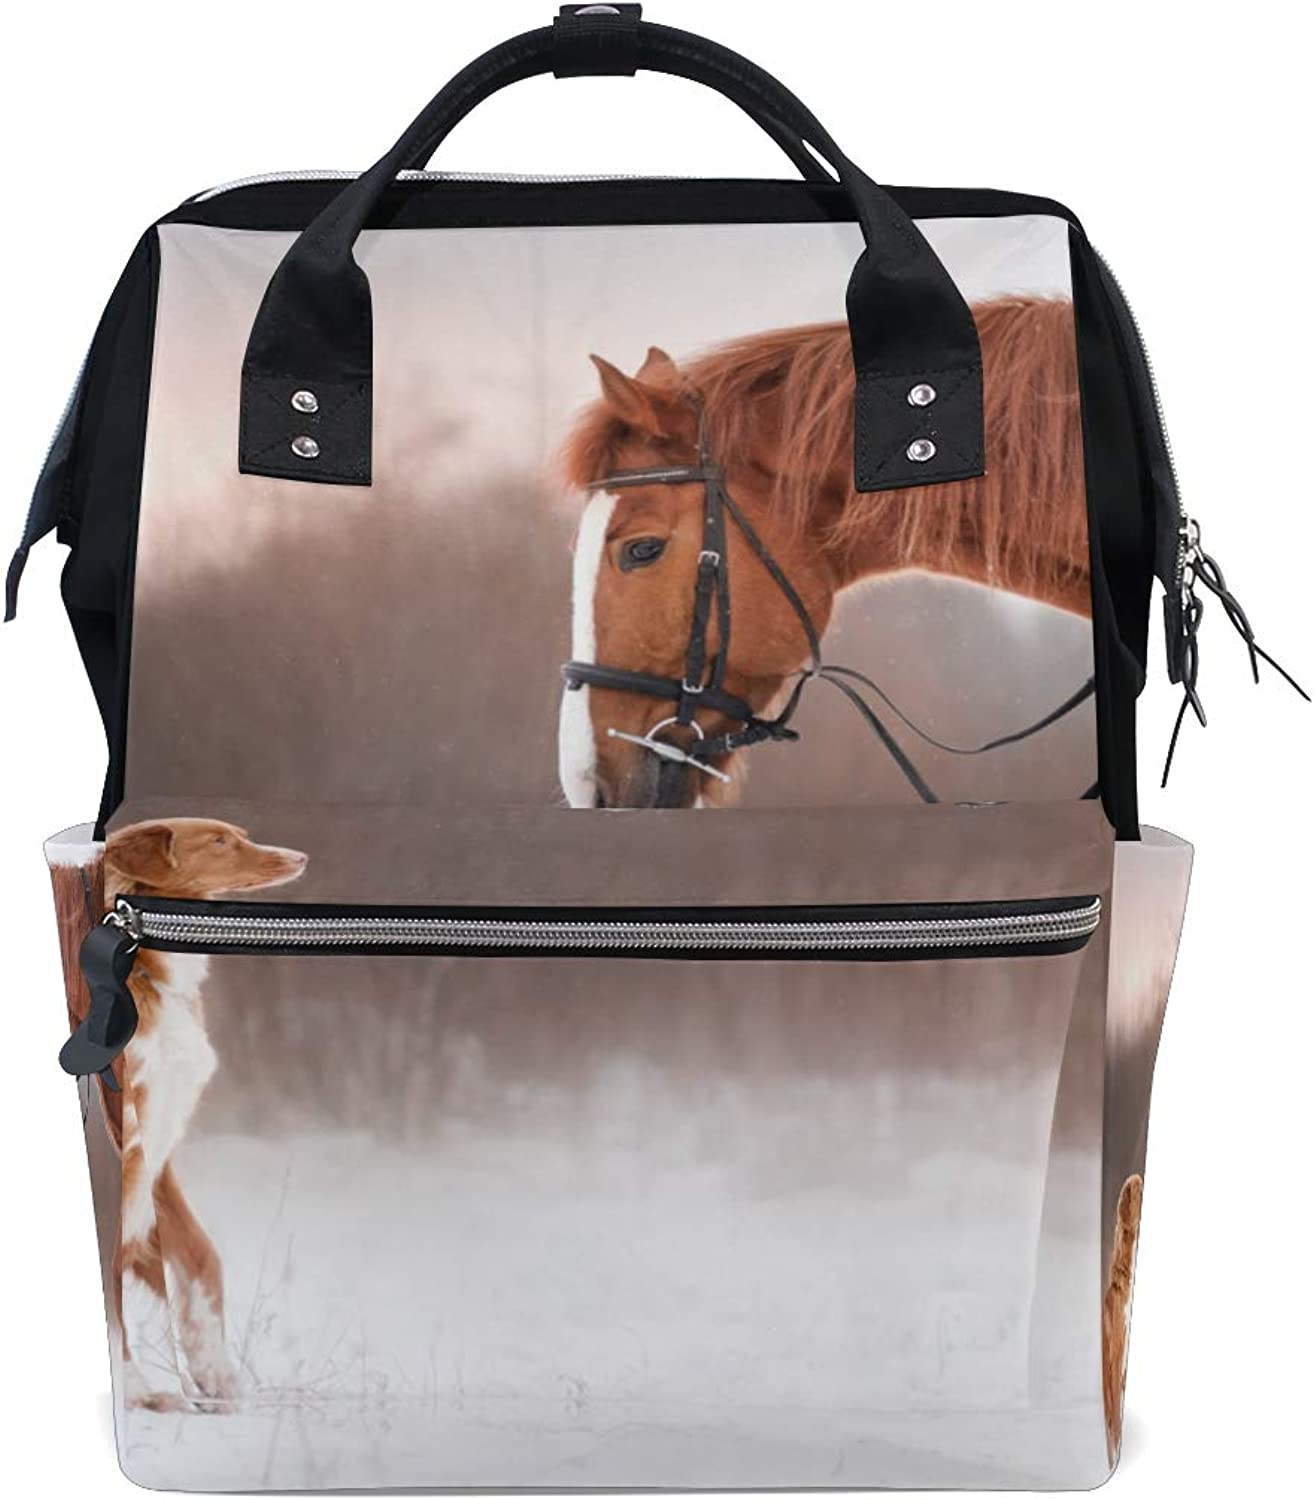 ColourLife Diaper bag Backpack Horse And Dog In Winter Casual Daypack Multifunctional Nappy Bags for Women Girls